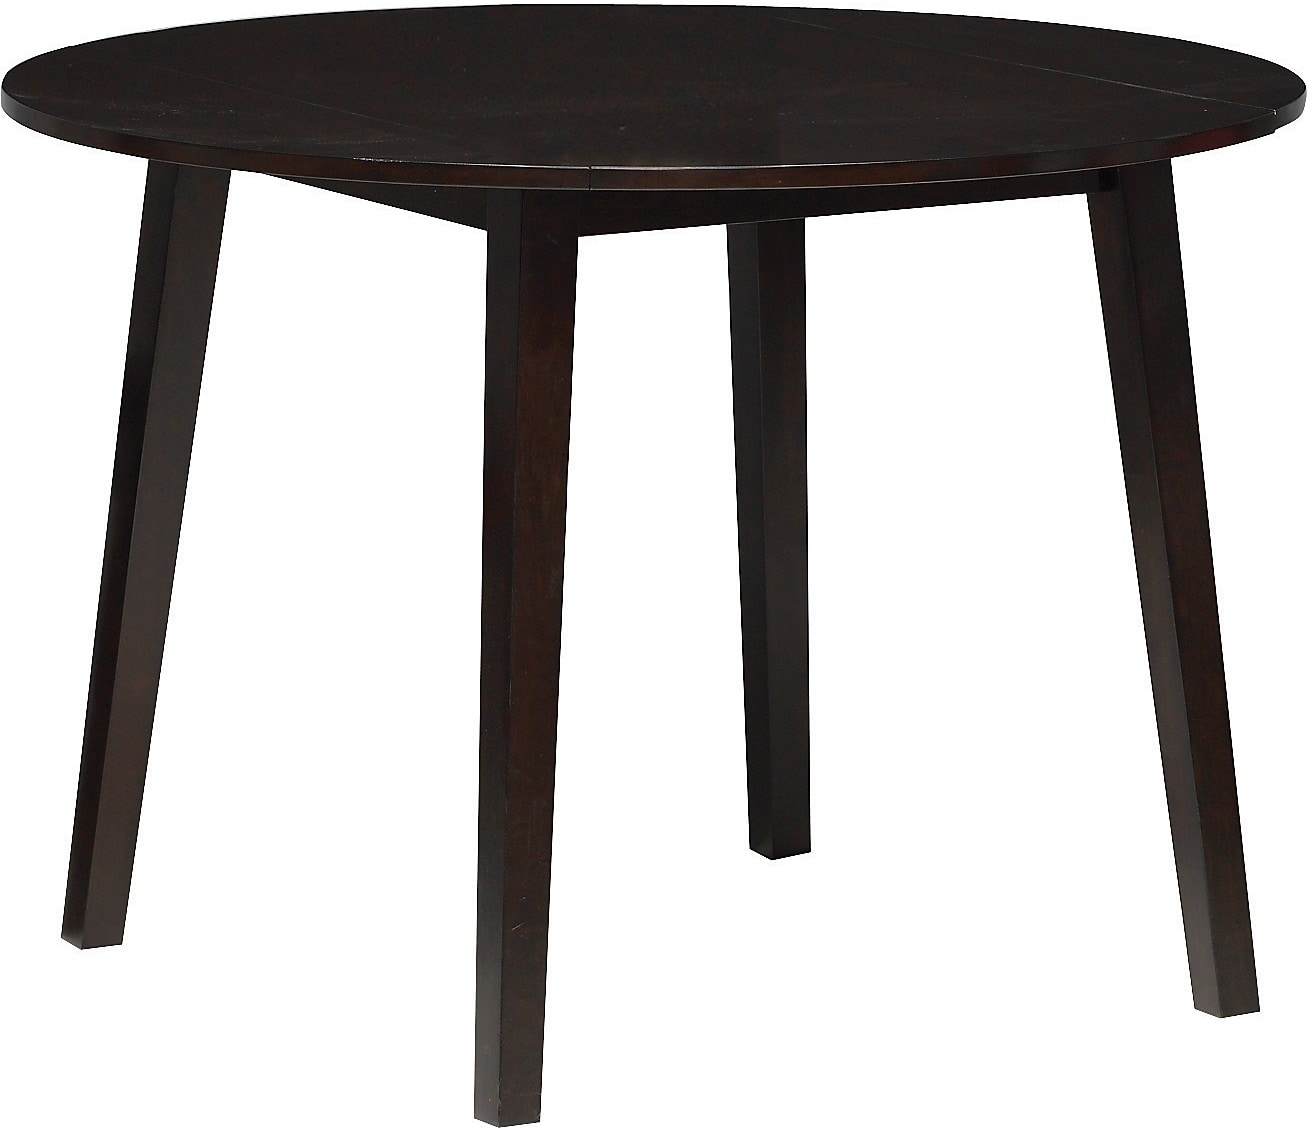 Dining Room Furniture - Dakota Round Drop Leaf Table